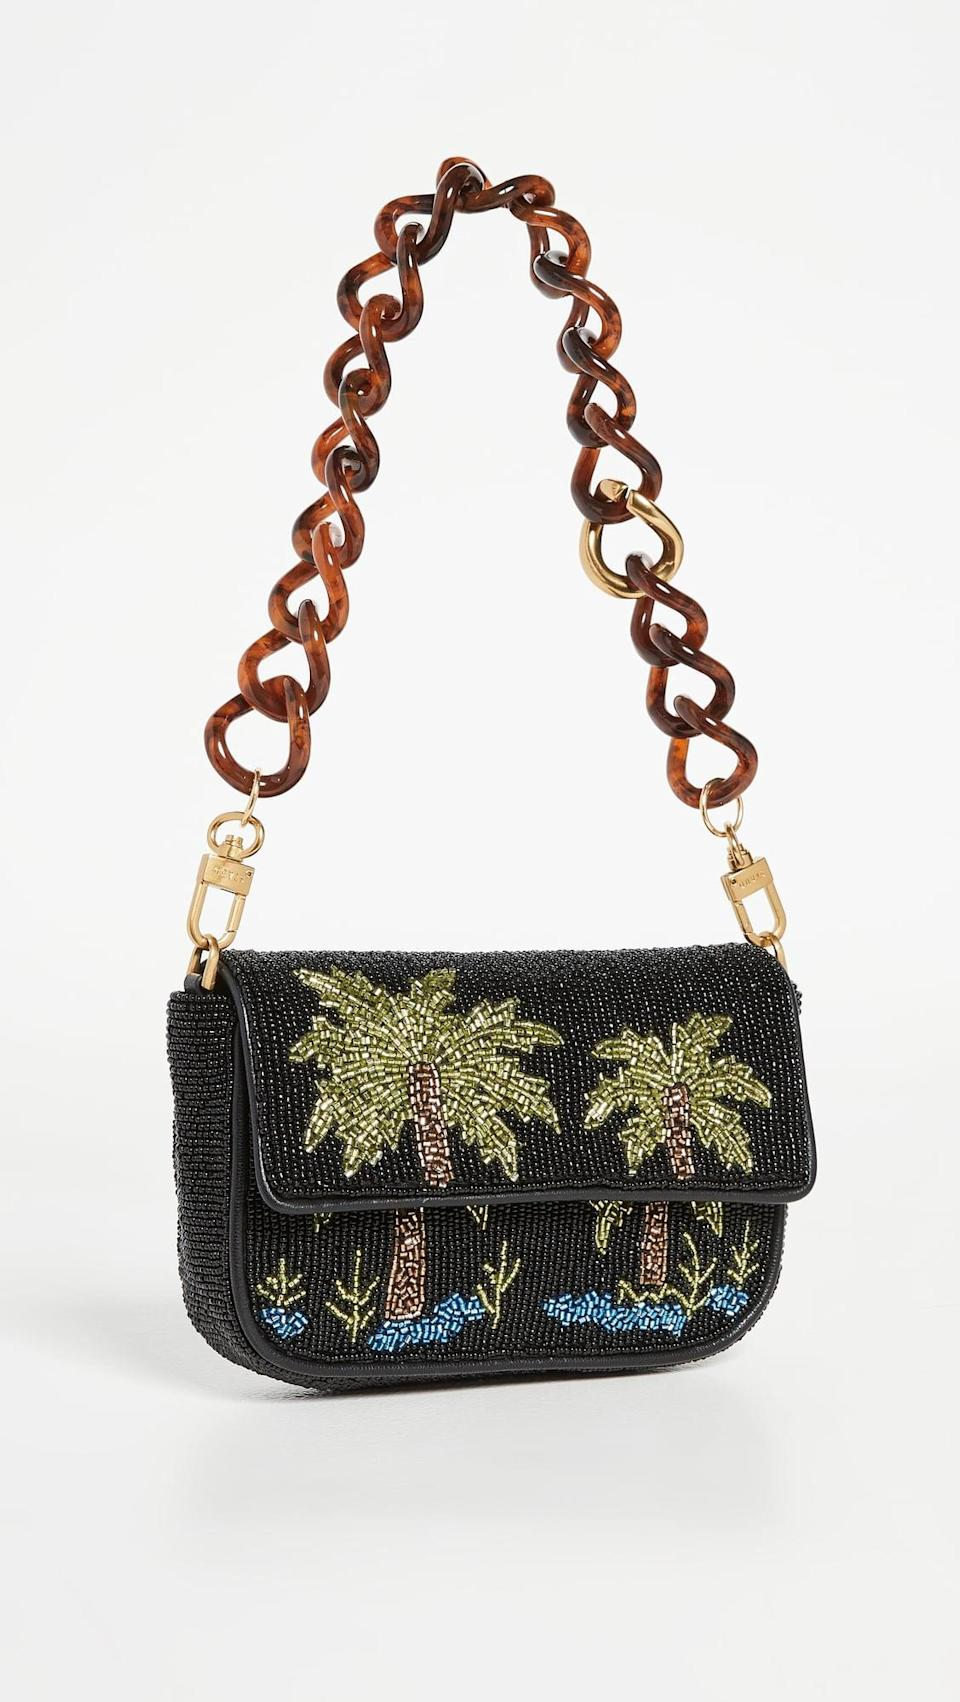 <p>This <span>Staud Beaded Mini Tommy Chain Bag</span> ($250) is so fun for a night out, and will bring some tropical vibes to any day of the year. Plus, it also comes with a leather crossbody strap, so it's convertible.</p>